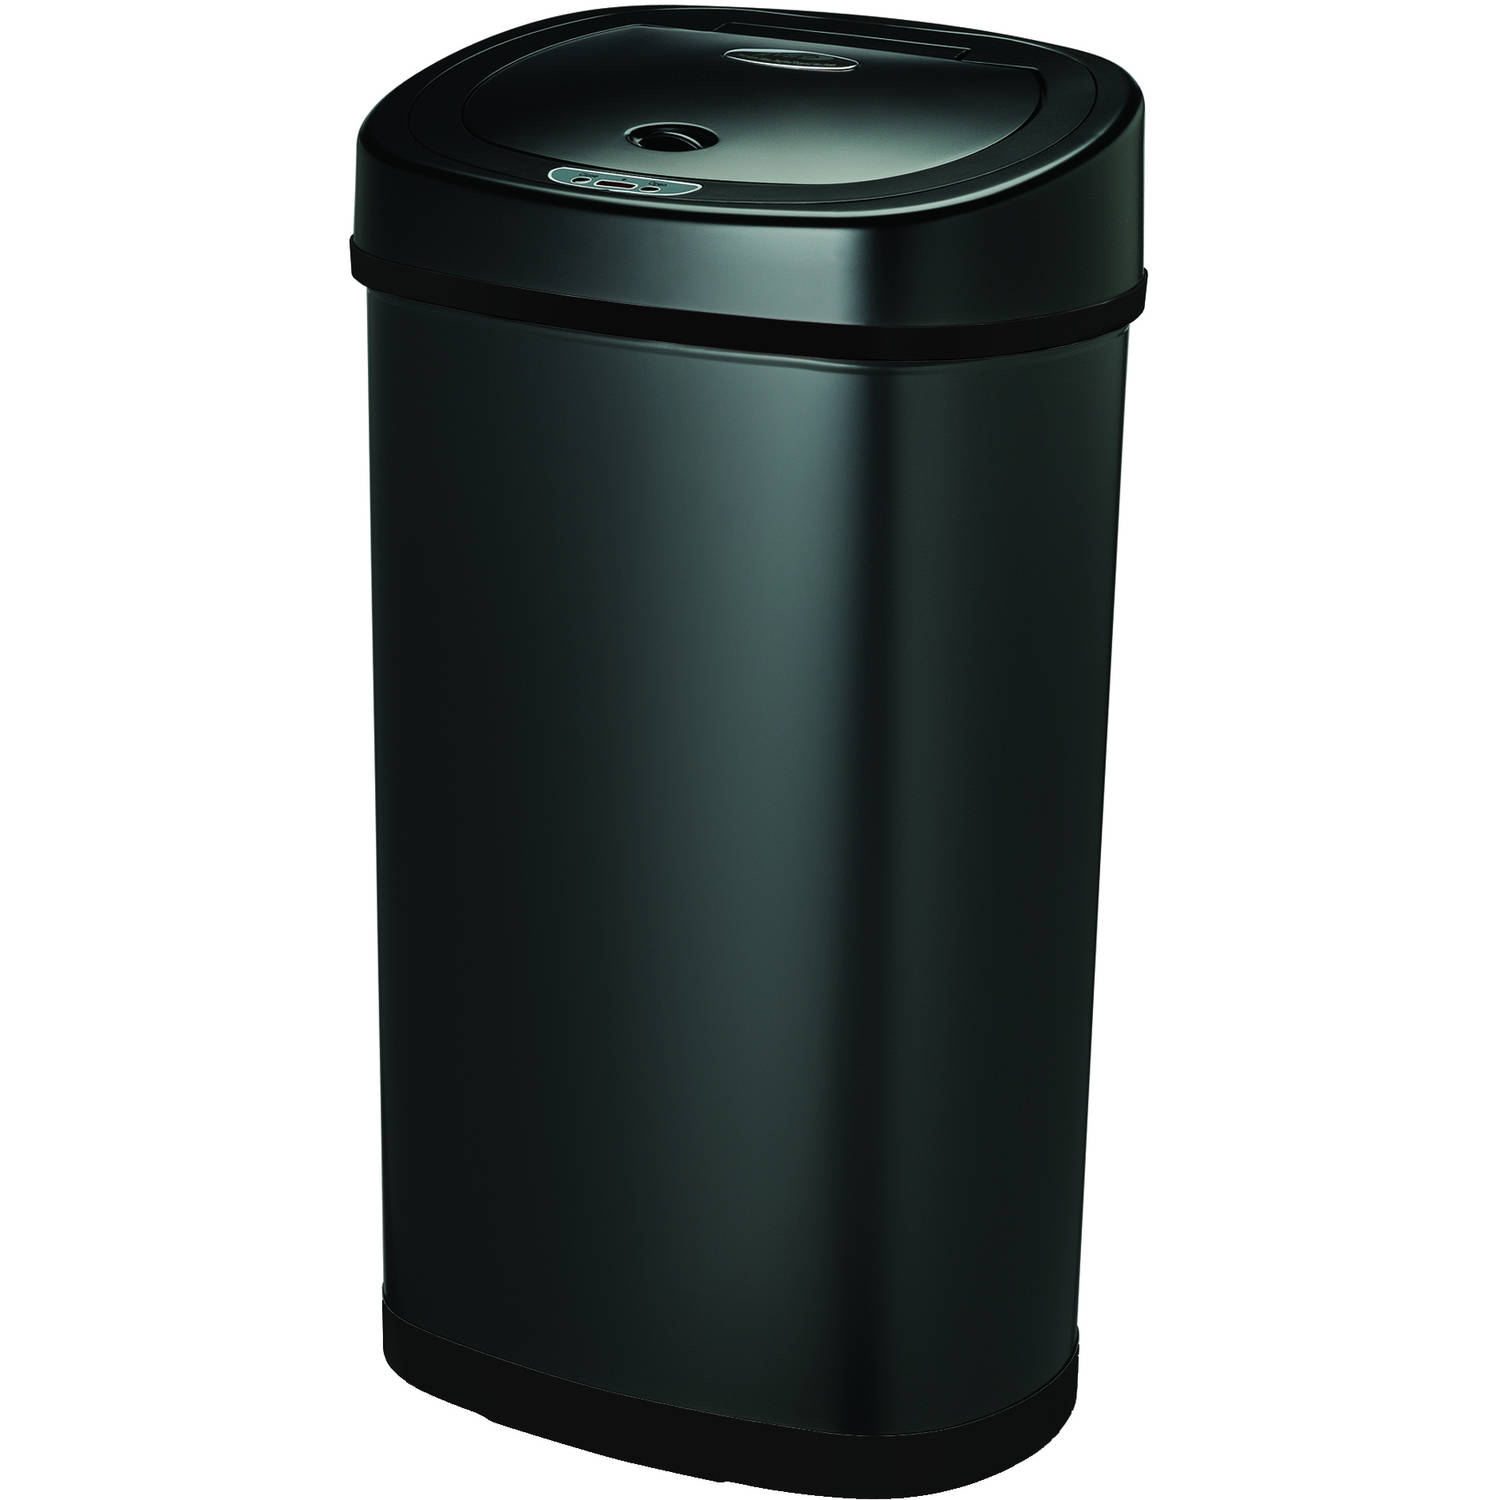 Charmant Nine Stars Motion Sensor Touchless 13.2 Gallon Trash Can, Black | EBay